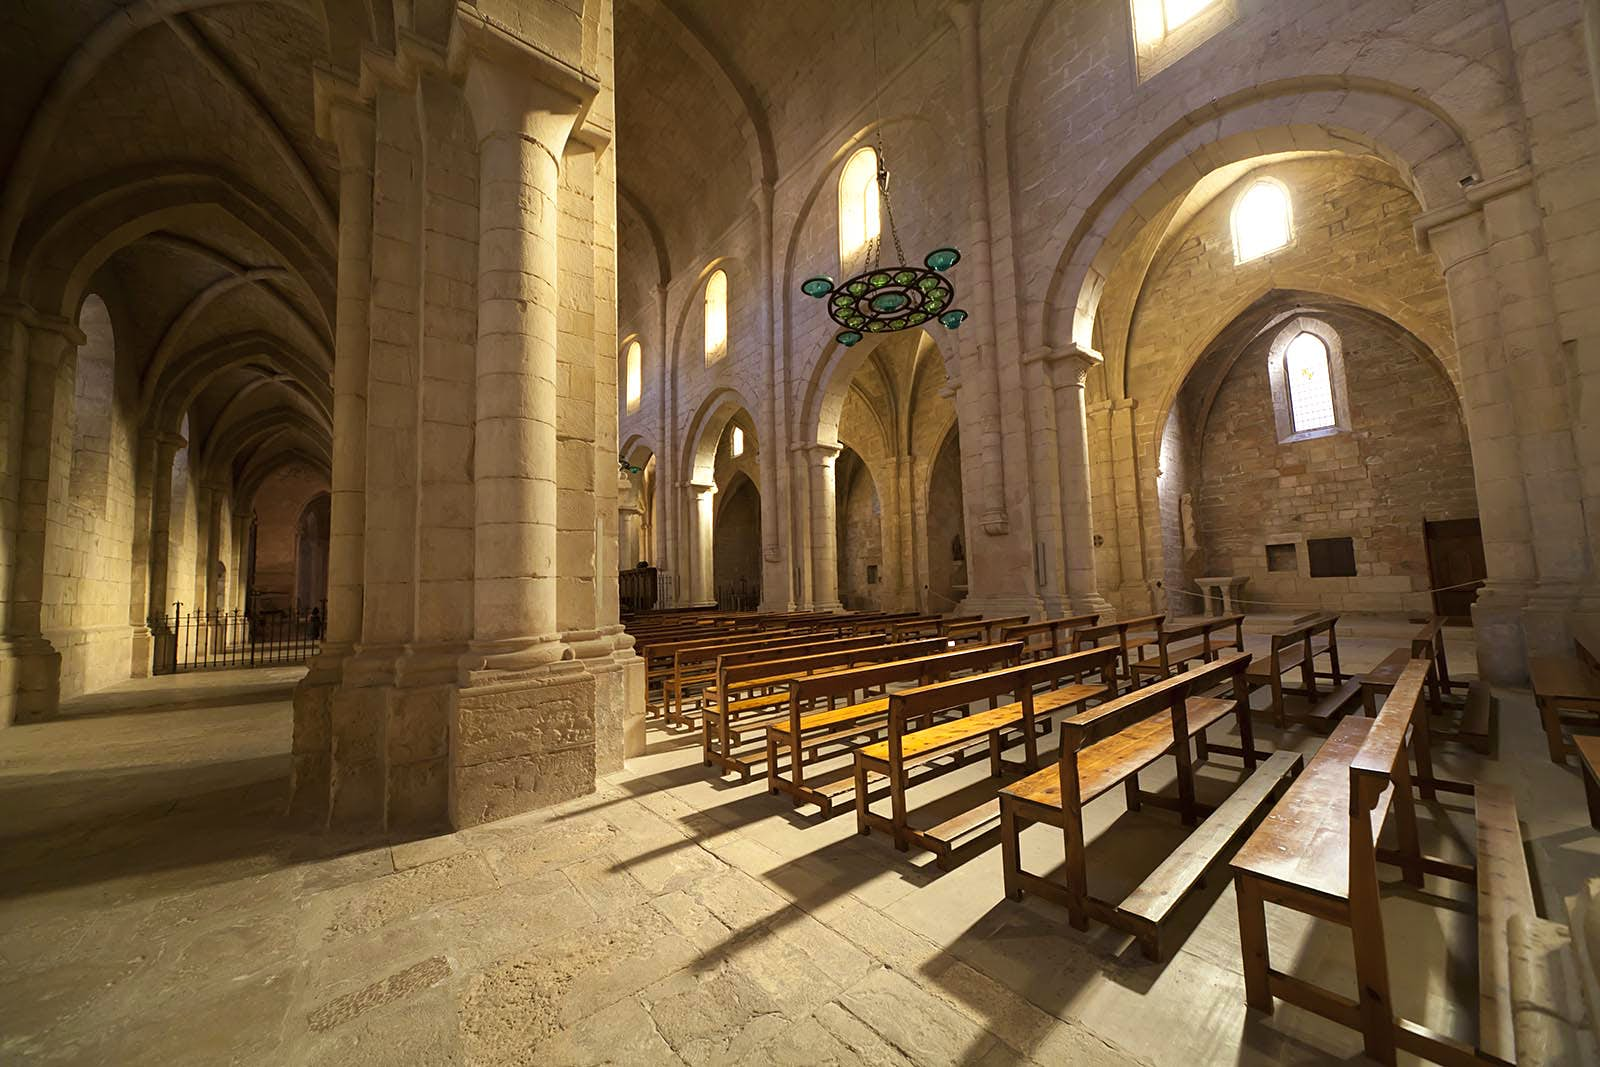 Monastery of Santa Maria de Poblet, located in the region Conca de Barberà, in Catalonia.